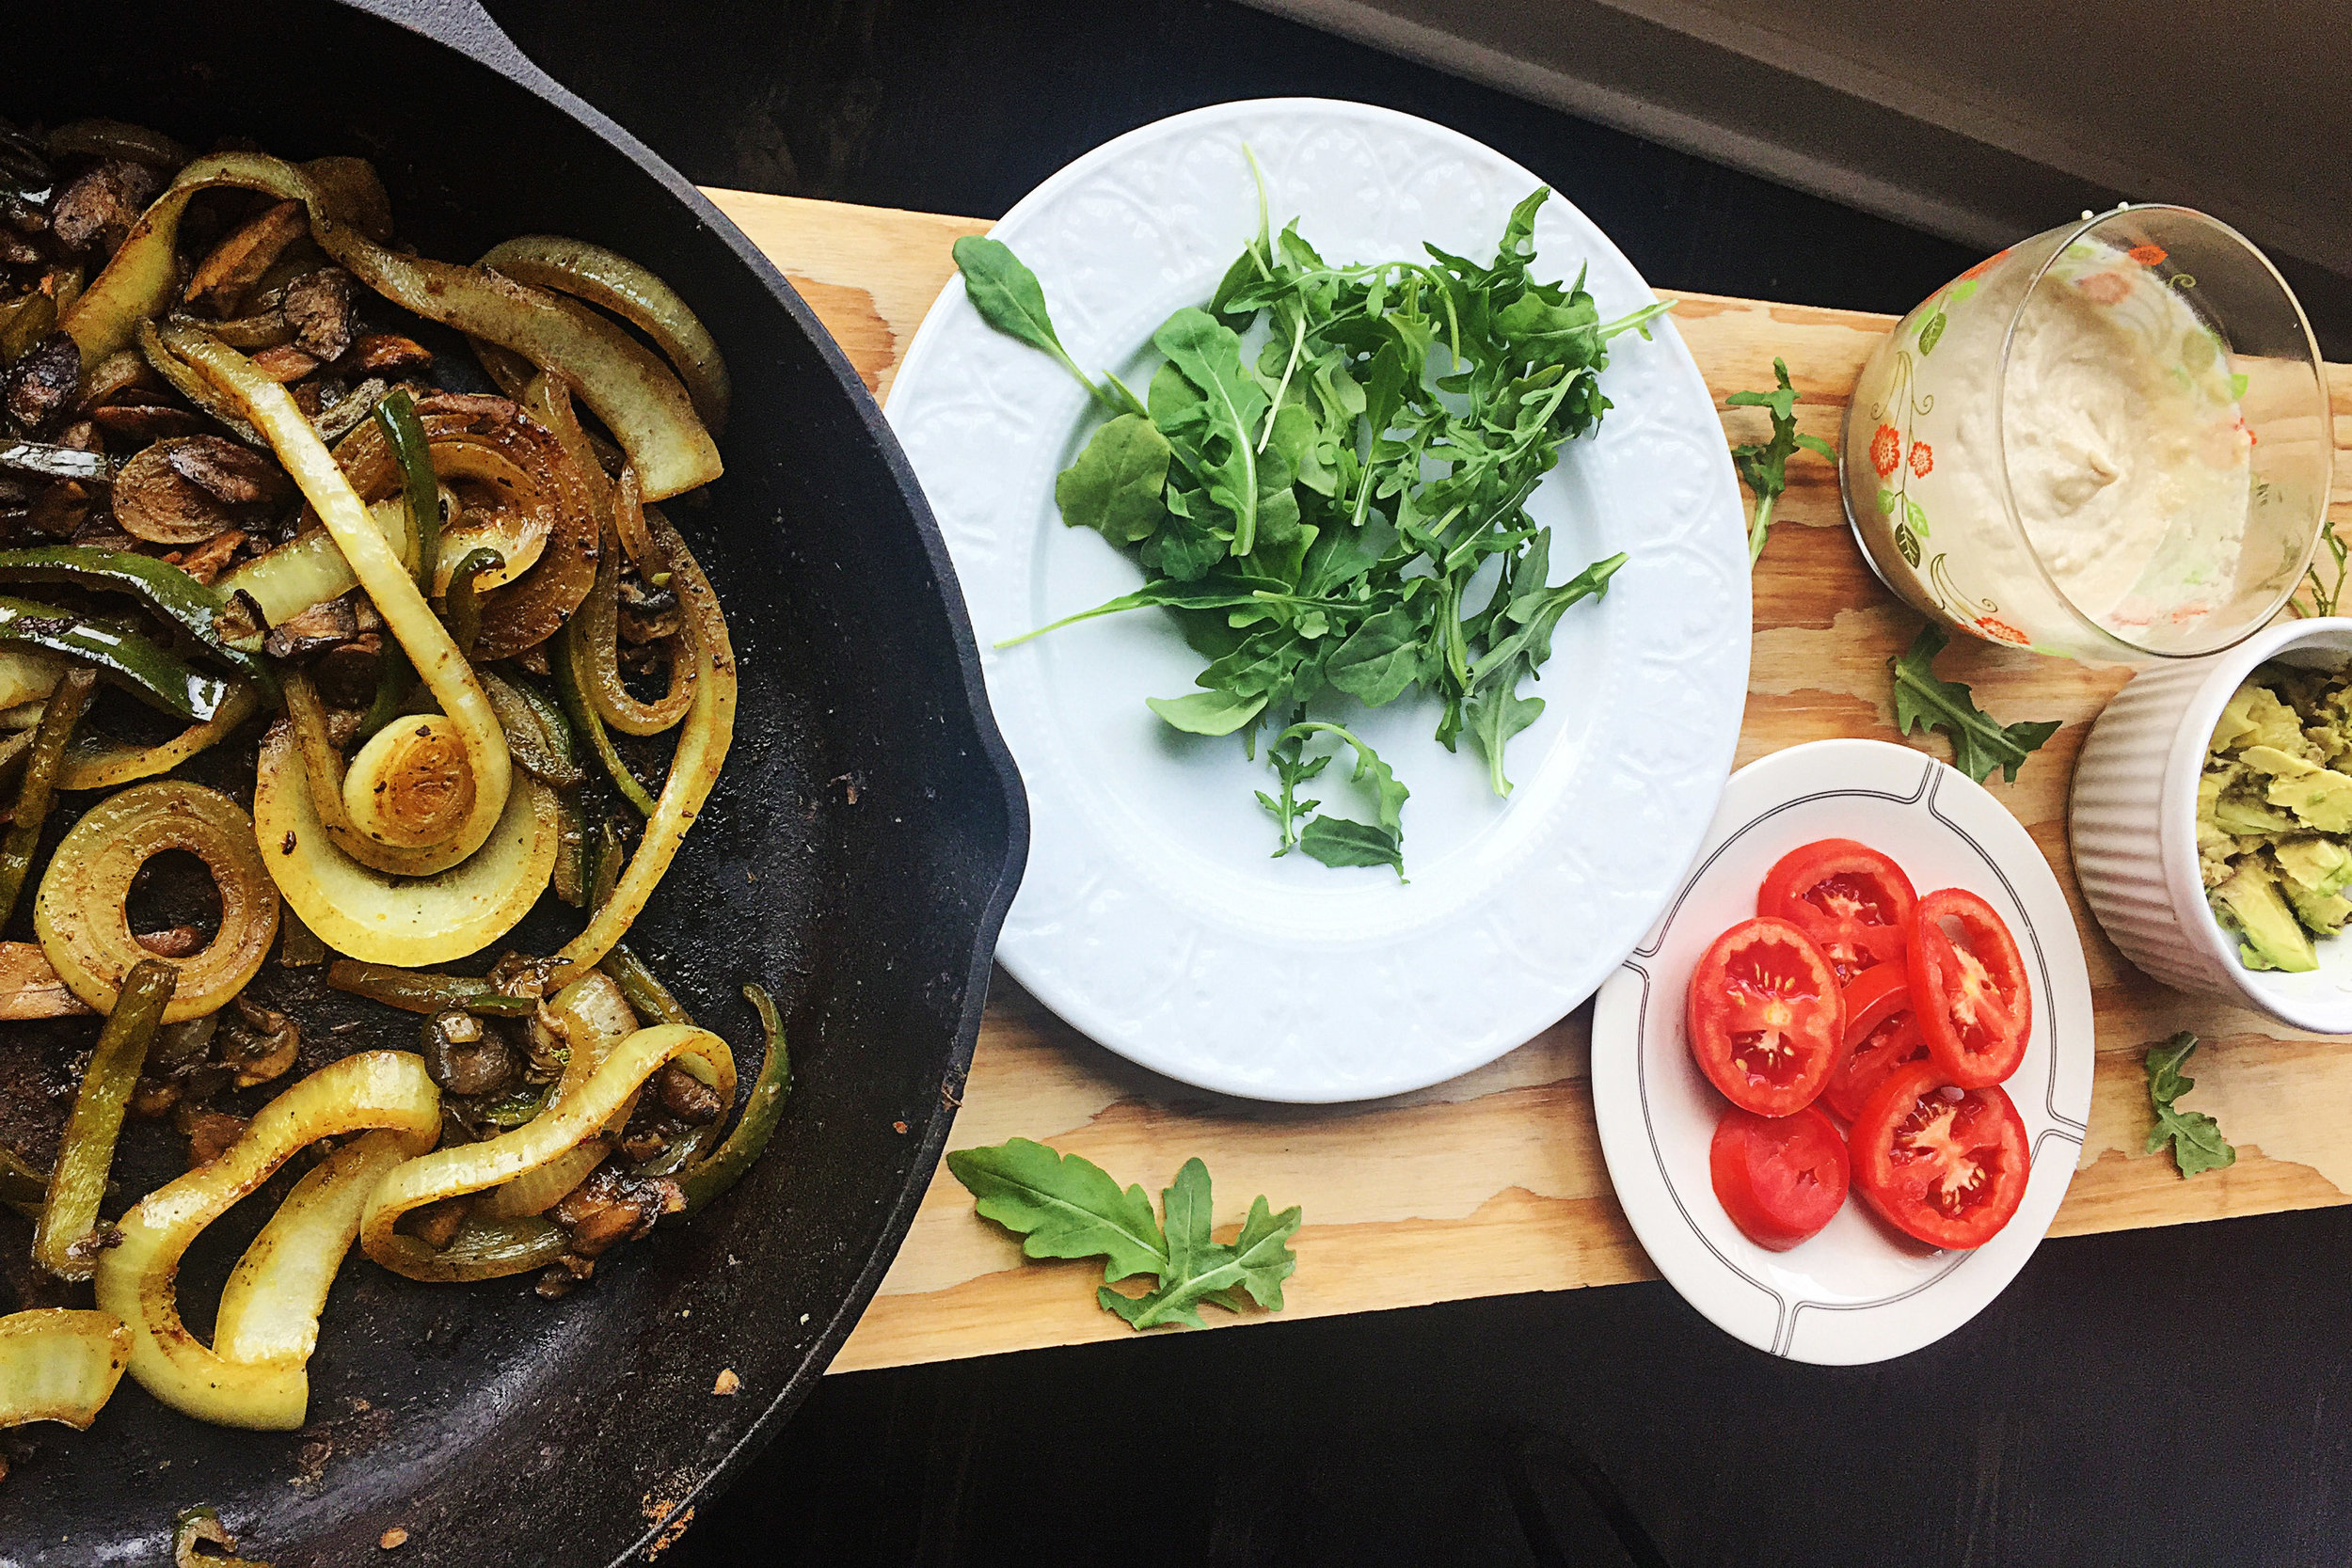 7. The final step is to prep our toppings bar. Whisk together the garlic lime tahini spread, place in a serving bowl. Chop tomatoes and avocado. Grab some arugula. I like to serve mine as a toppings bar since not everyone loves all the ingredients, so they can make their own.